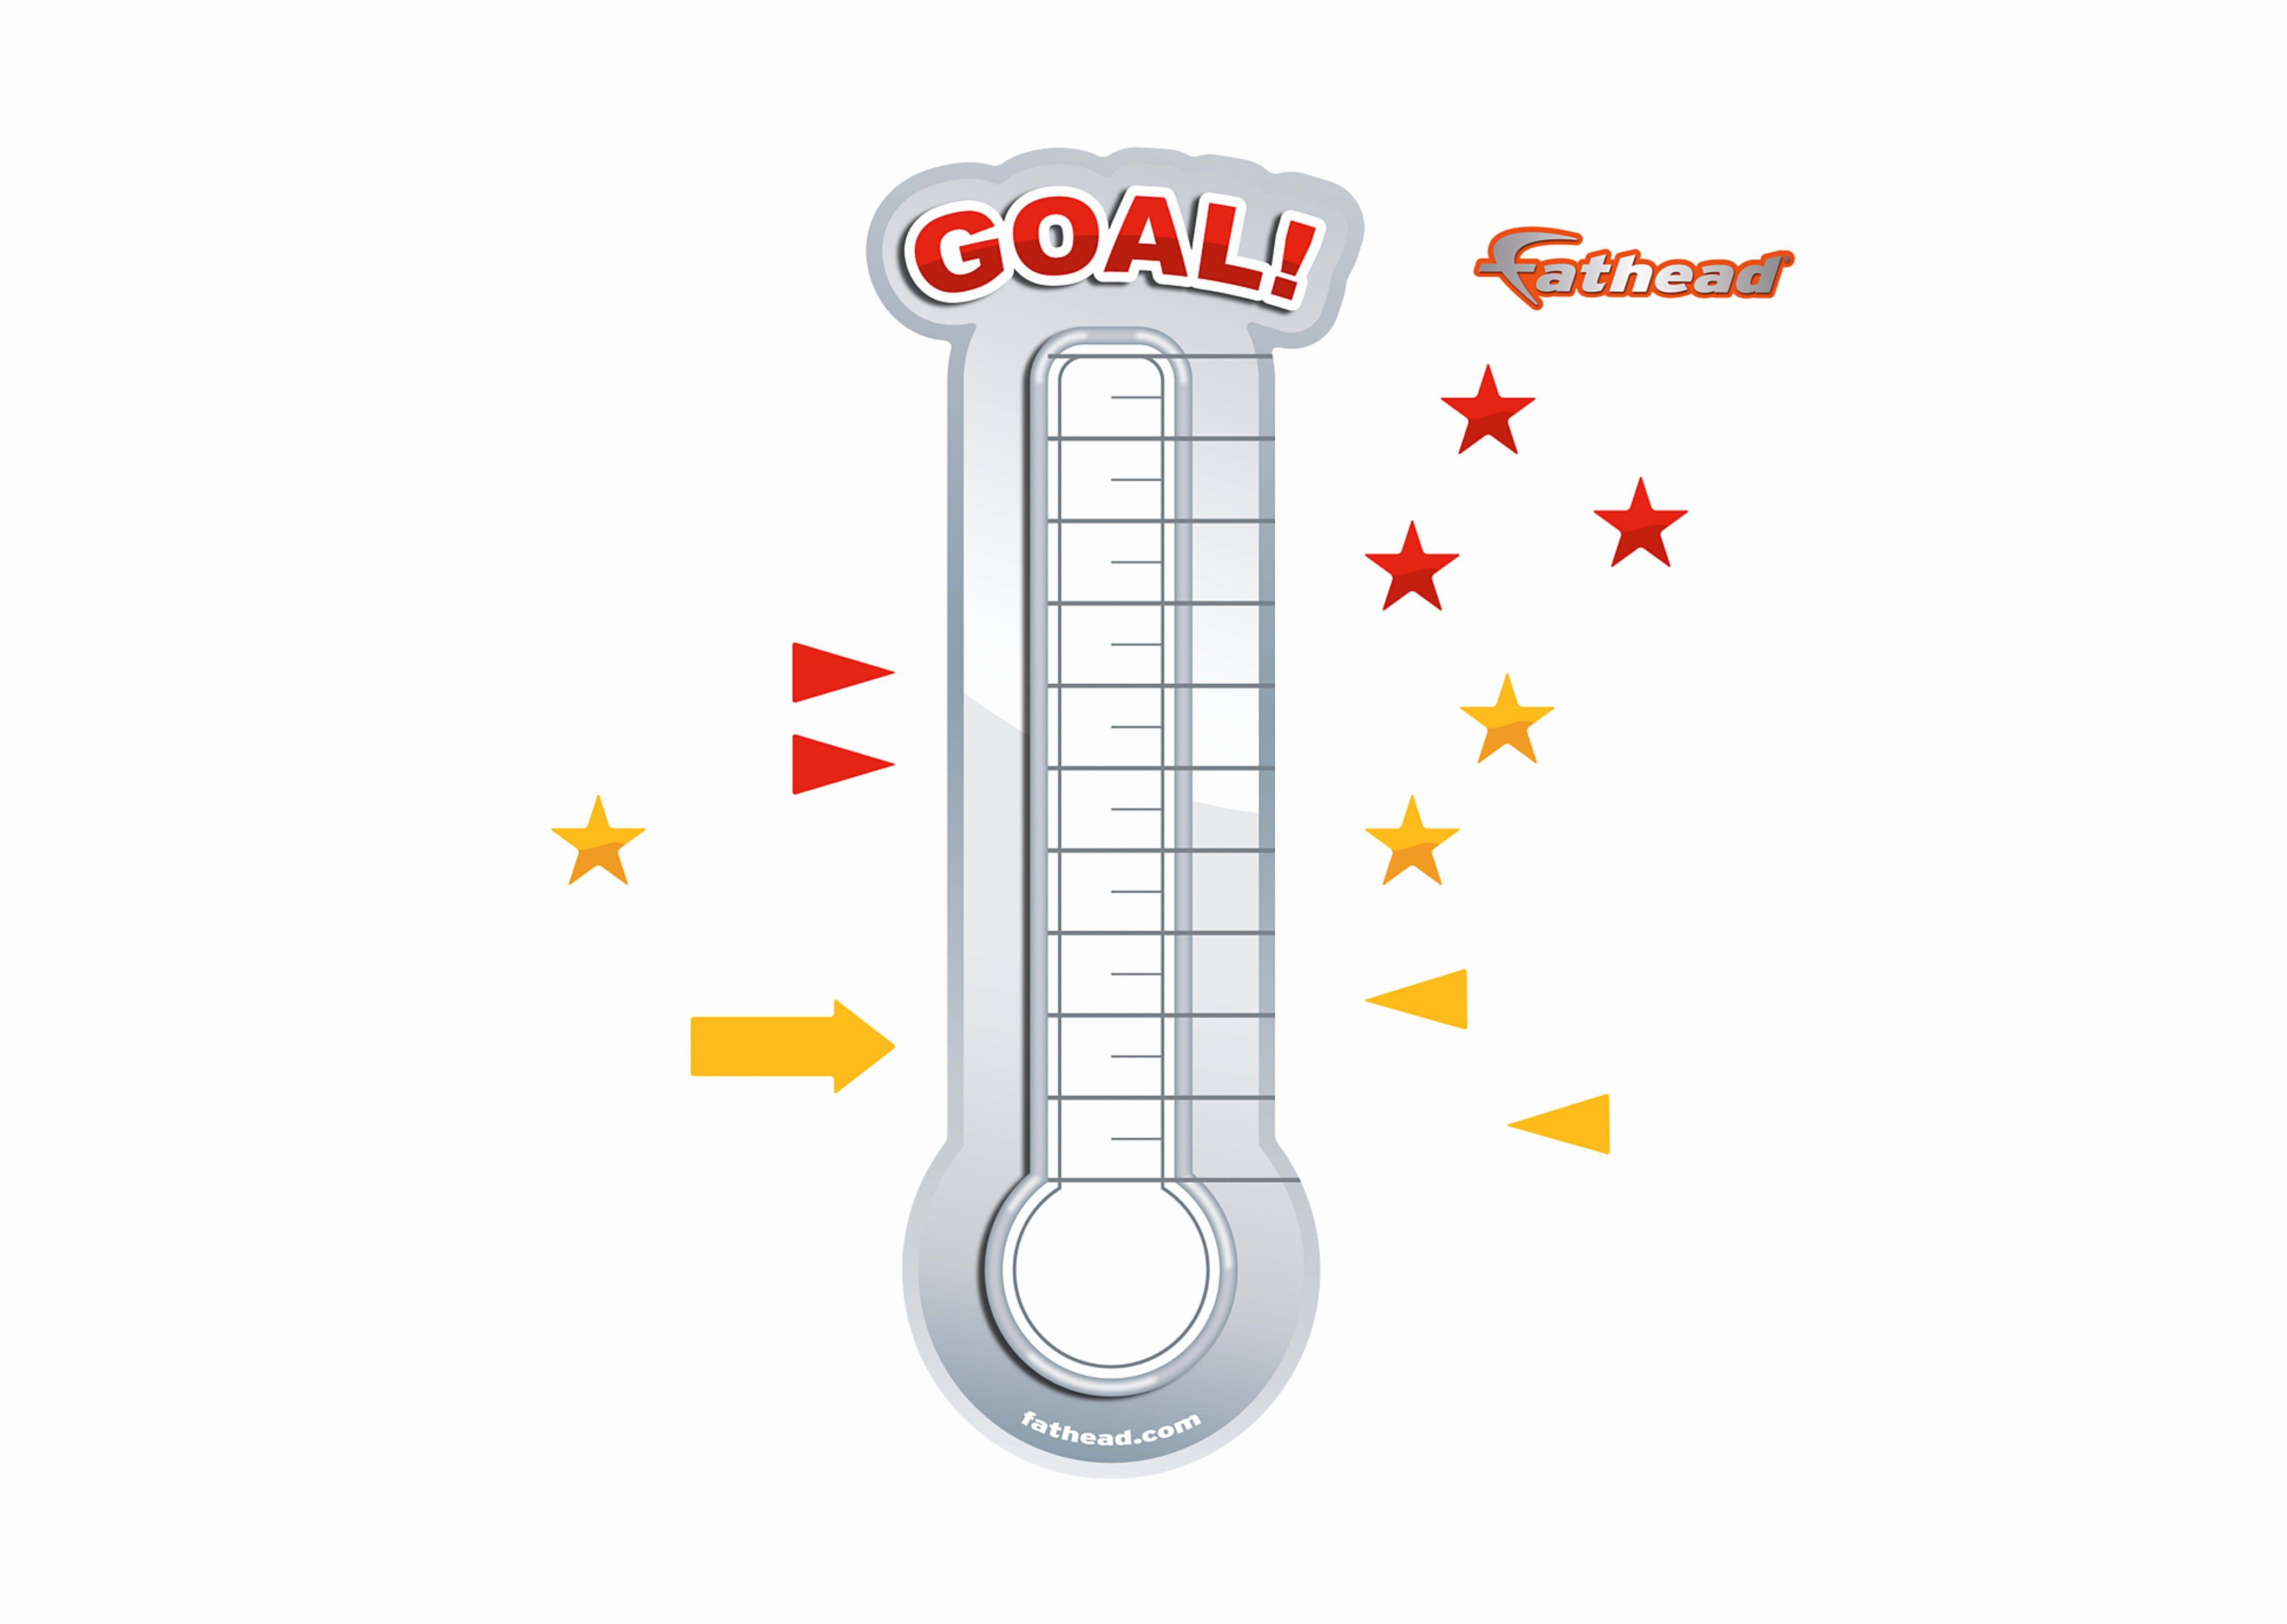 Fundraising thermometer Image Awesome Dry Erase Goal thermometer X Removable Wall